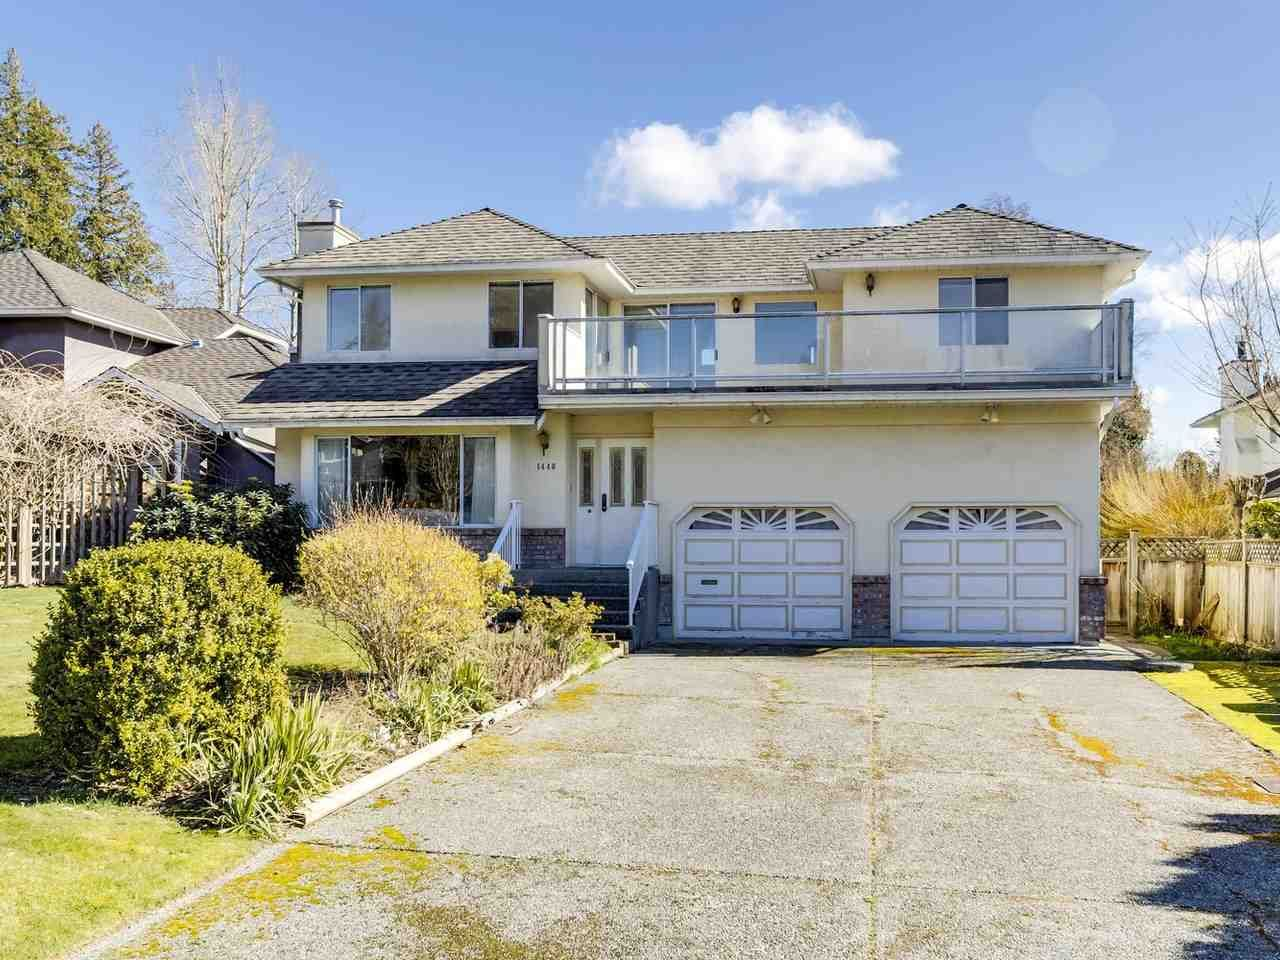 Main Photo: 1440 134A Street in Surrey: Crescent Bch Ocean Pk. House for sale (South Surrey White Rock)  : MLS®# R2552368